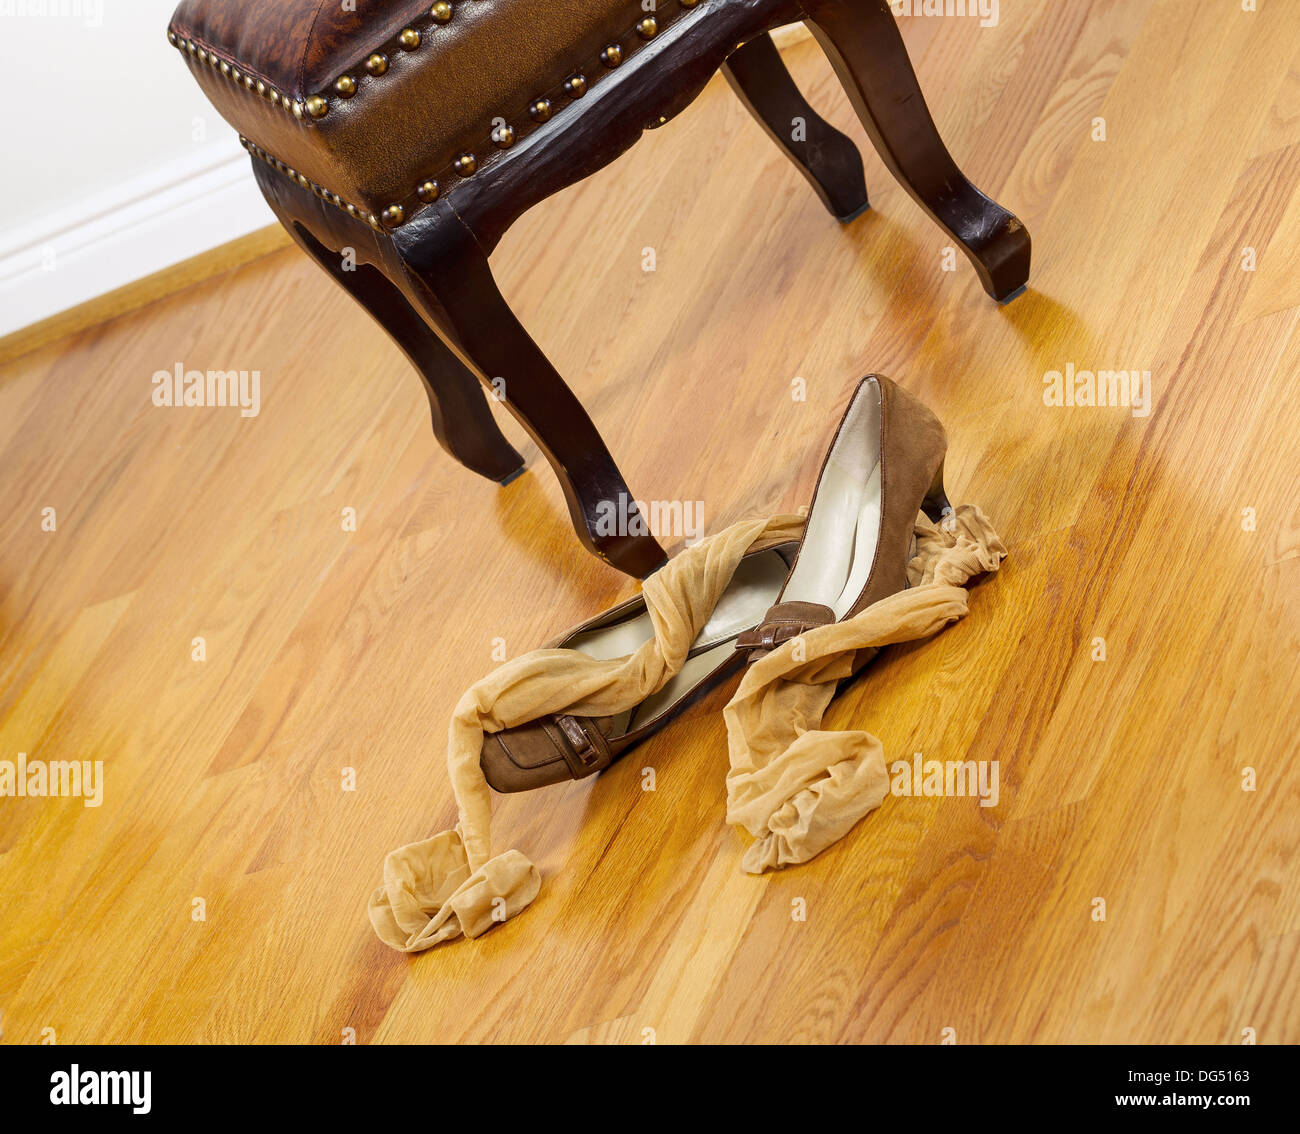 Angled photo of woman stockings and dress shoes lying next to padded footstool with red oak floors in background - Stock Image